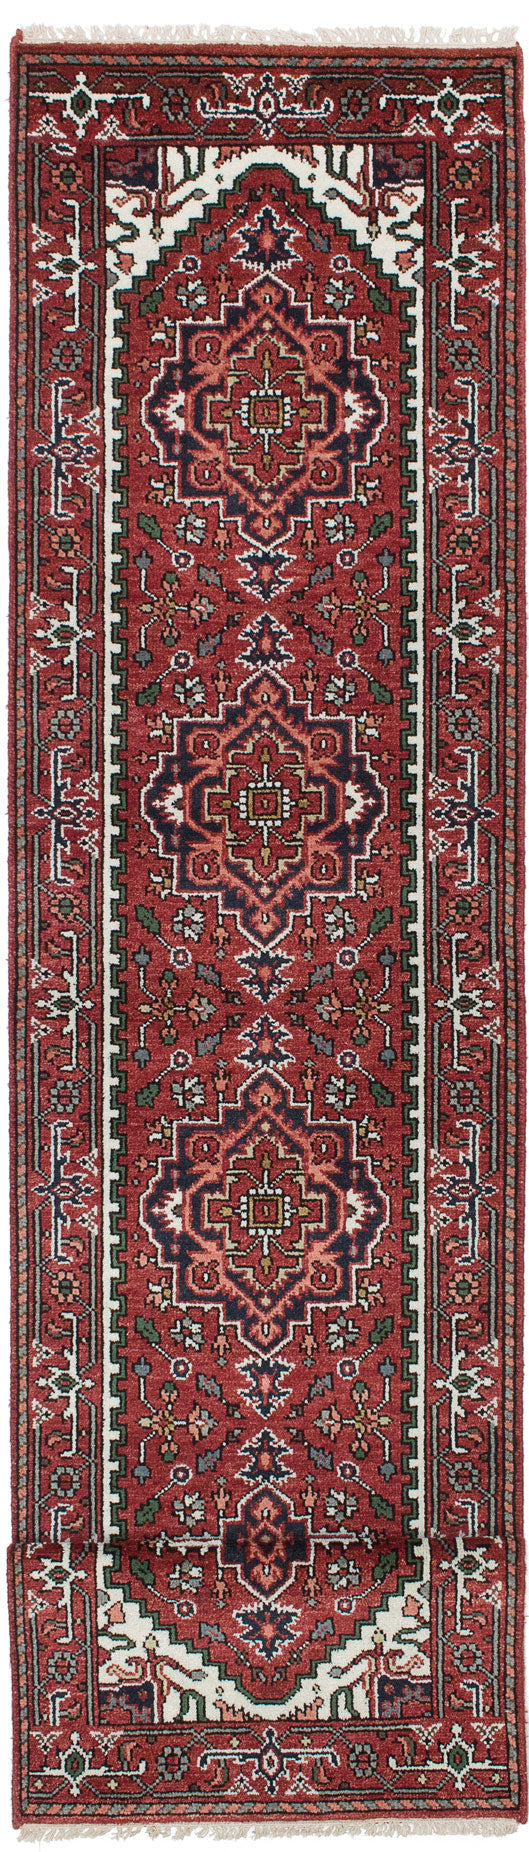 "Hand-knotted Indian Traditional Serapi-Heritage Runner rug  Dark Burgundy 2'7 x 11'11"" """